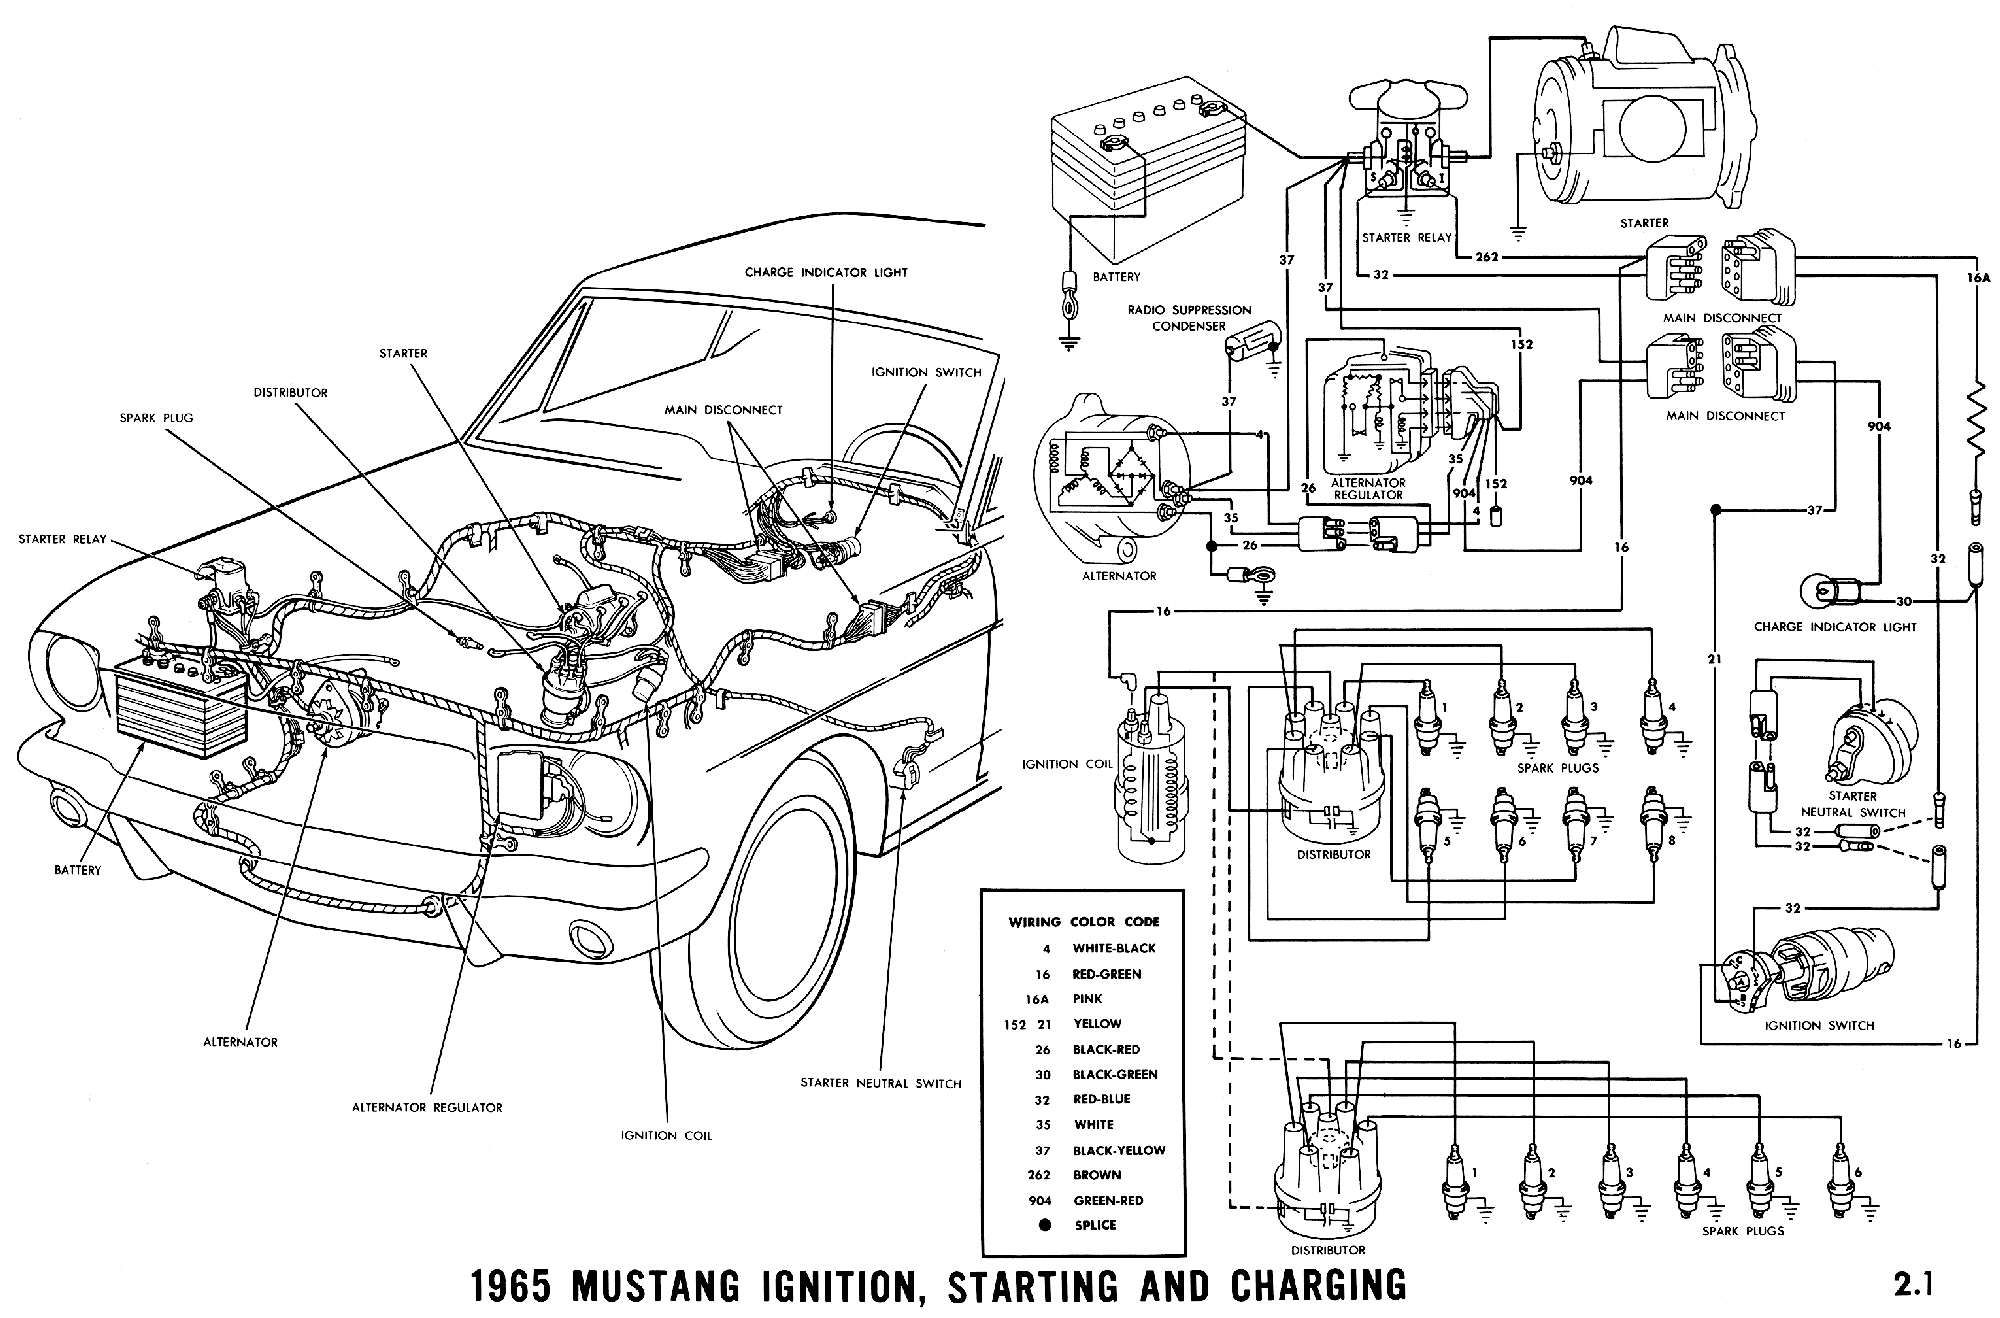 1965 Mustang Wiring Diagrams - Average Joe Restoration | Mustang engine,  1965 mustang, Classic mustangPinterest